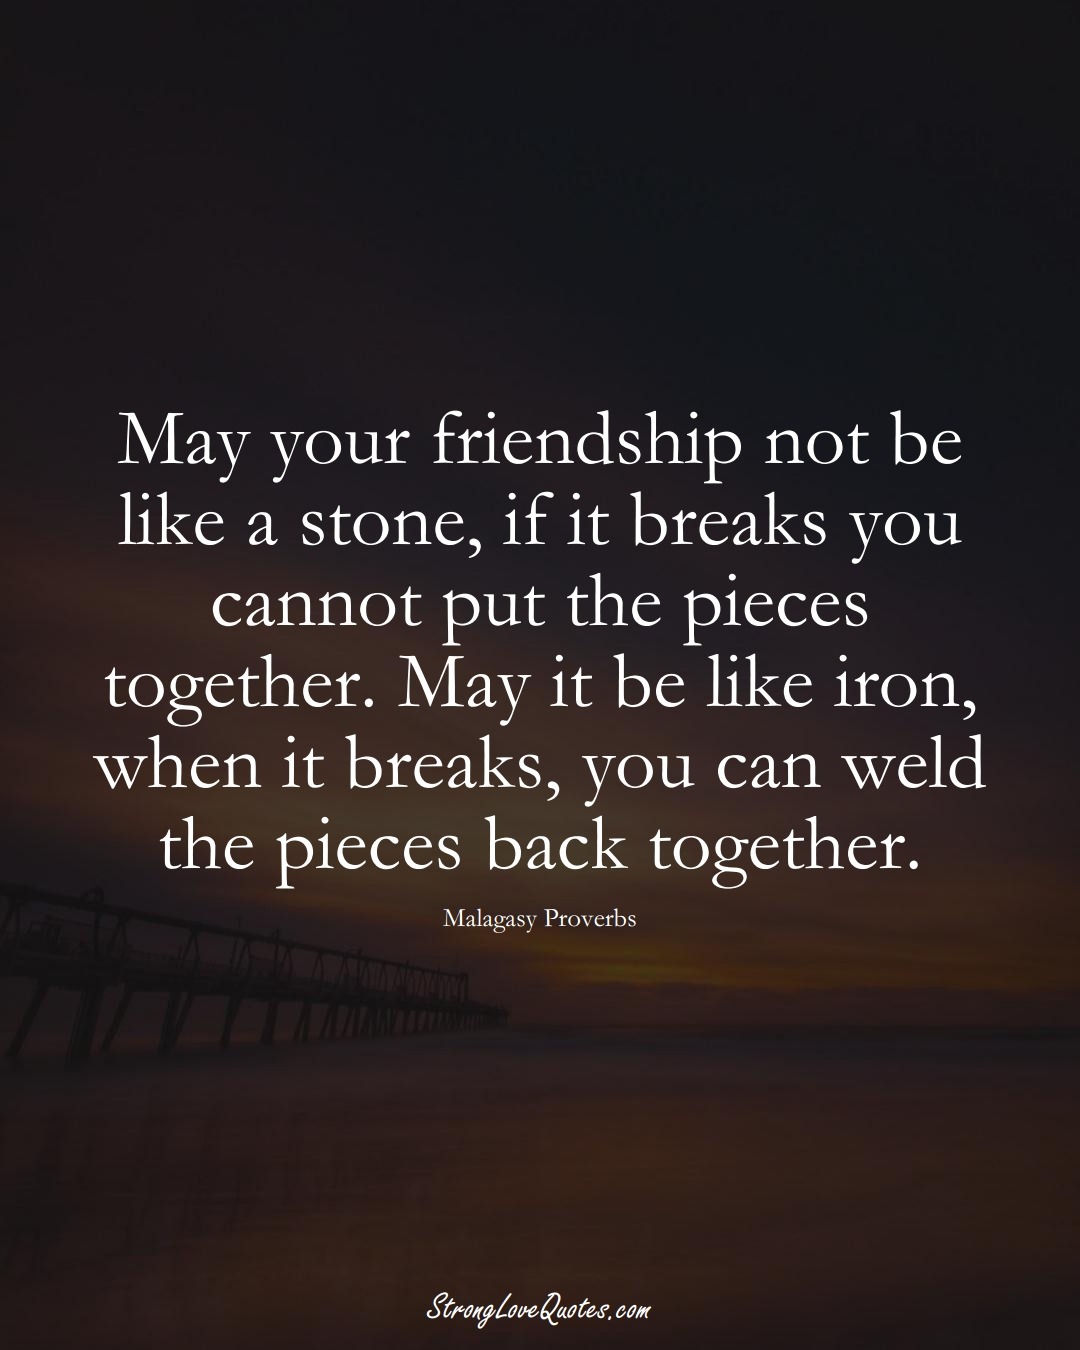 May your friendship not be like a stone, if it breaks you cannot put the pieces together. May it be like iron, when it breaks, you can weld the pieces back together. (Malagasy Sayings);  #AfricanSayings